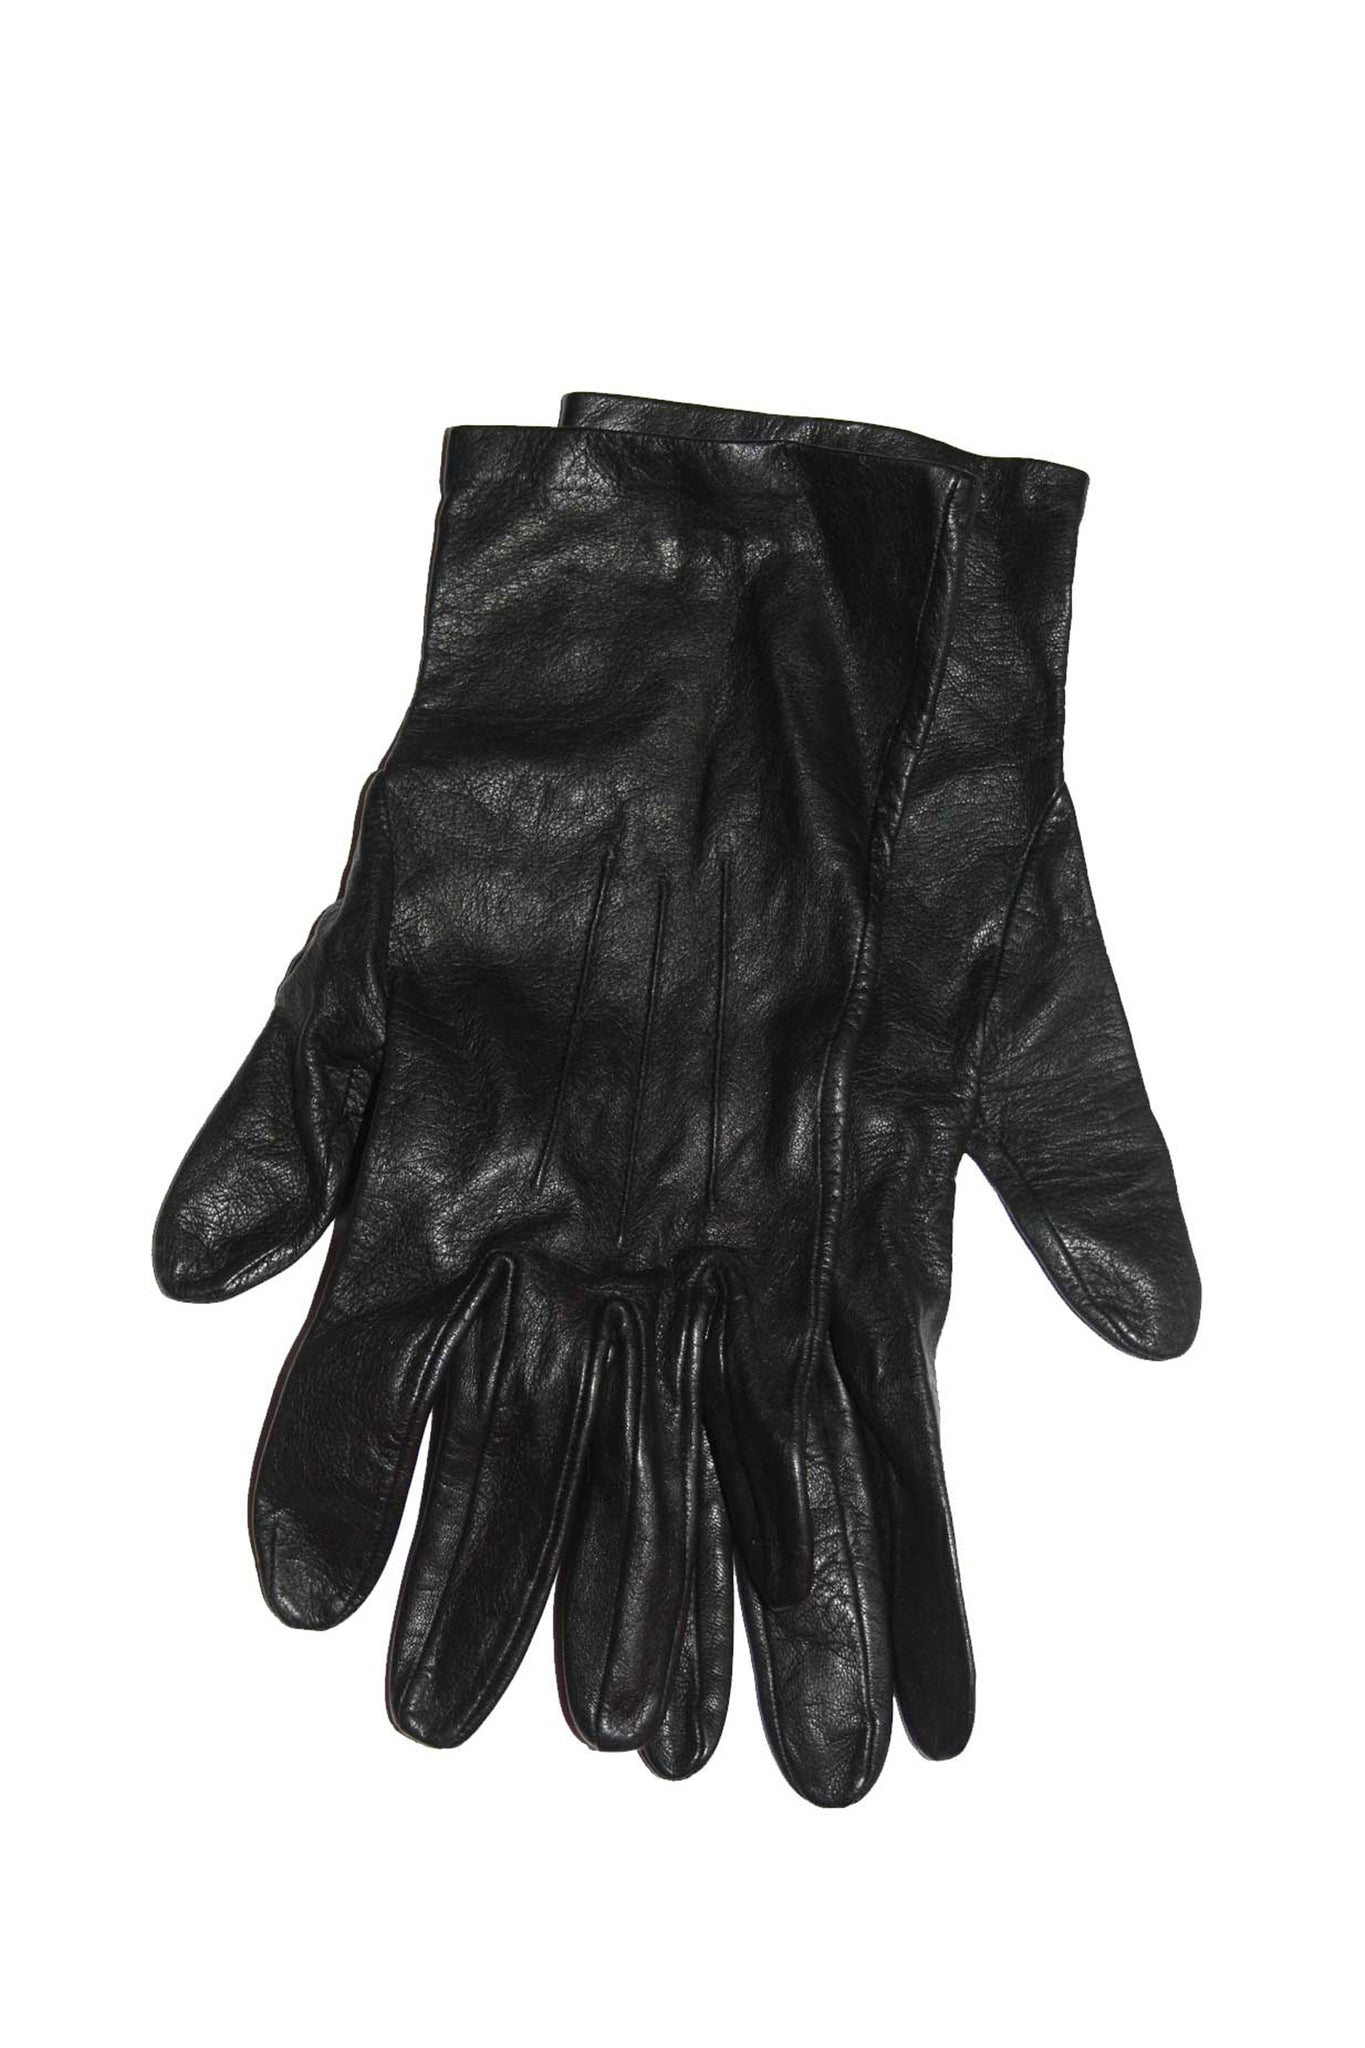 Black vintage leather gloves - SoLovesVintage